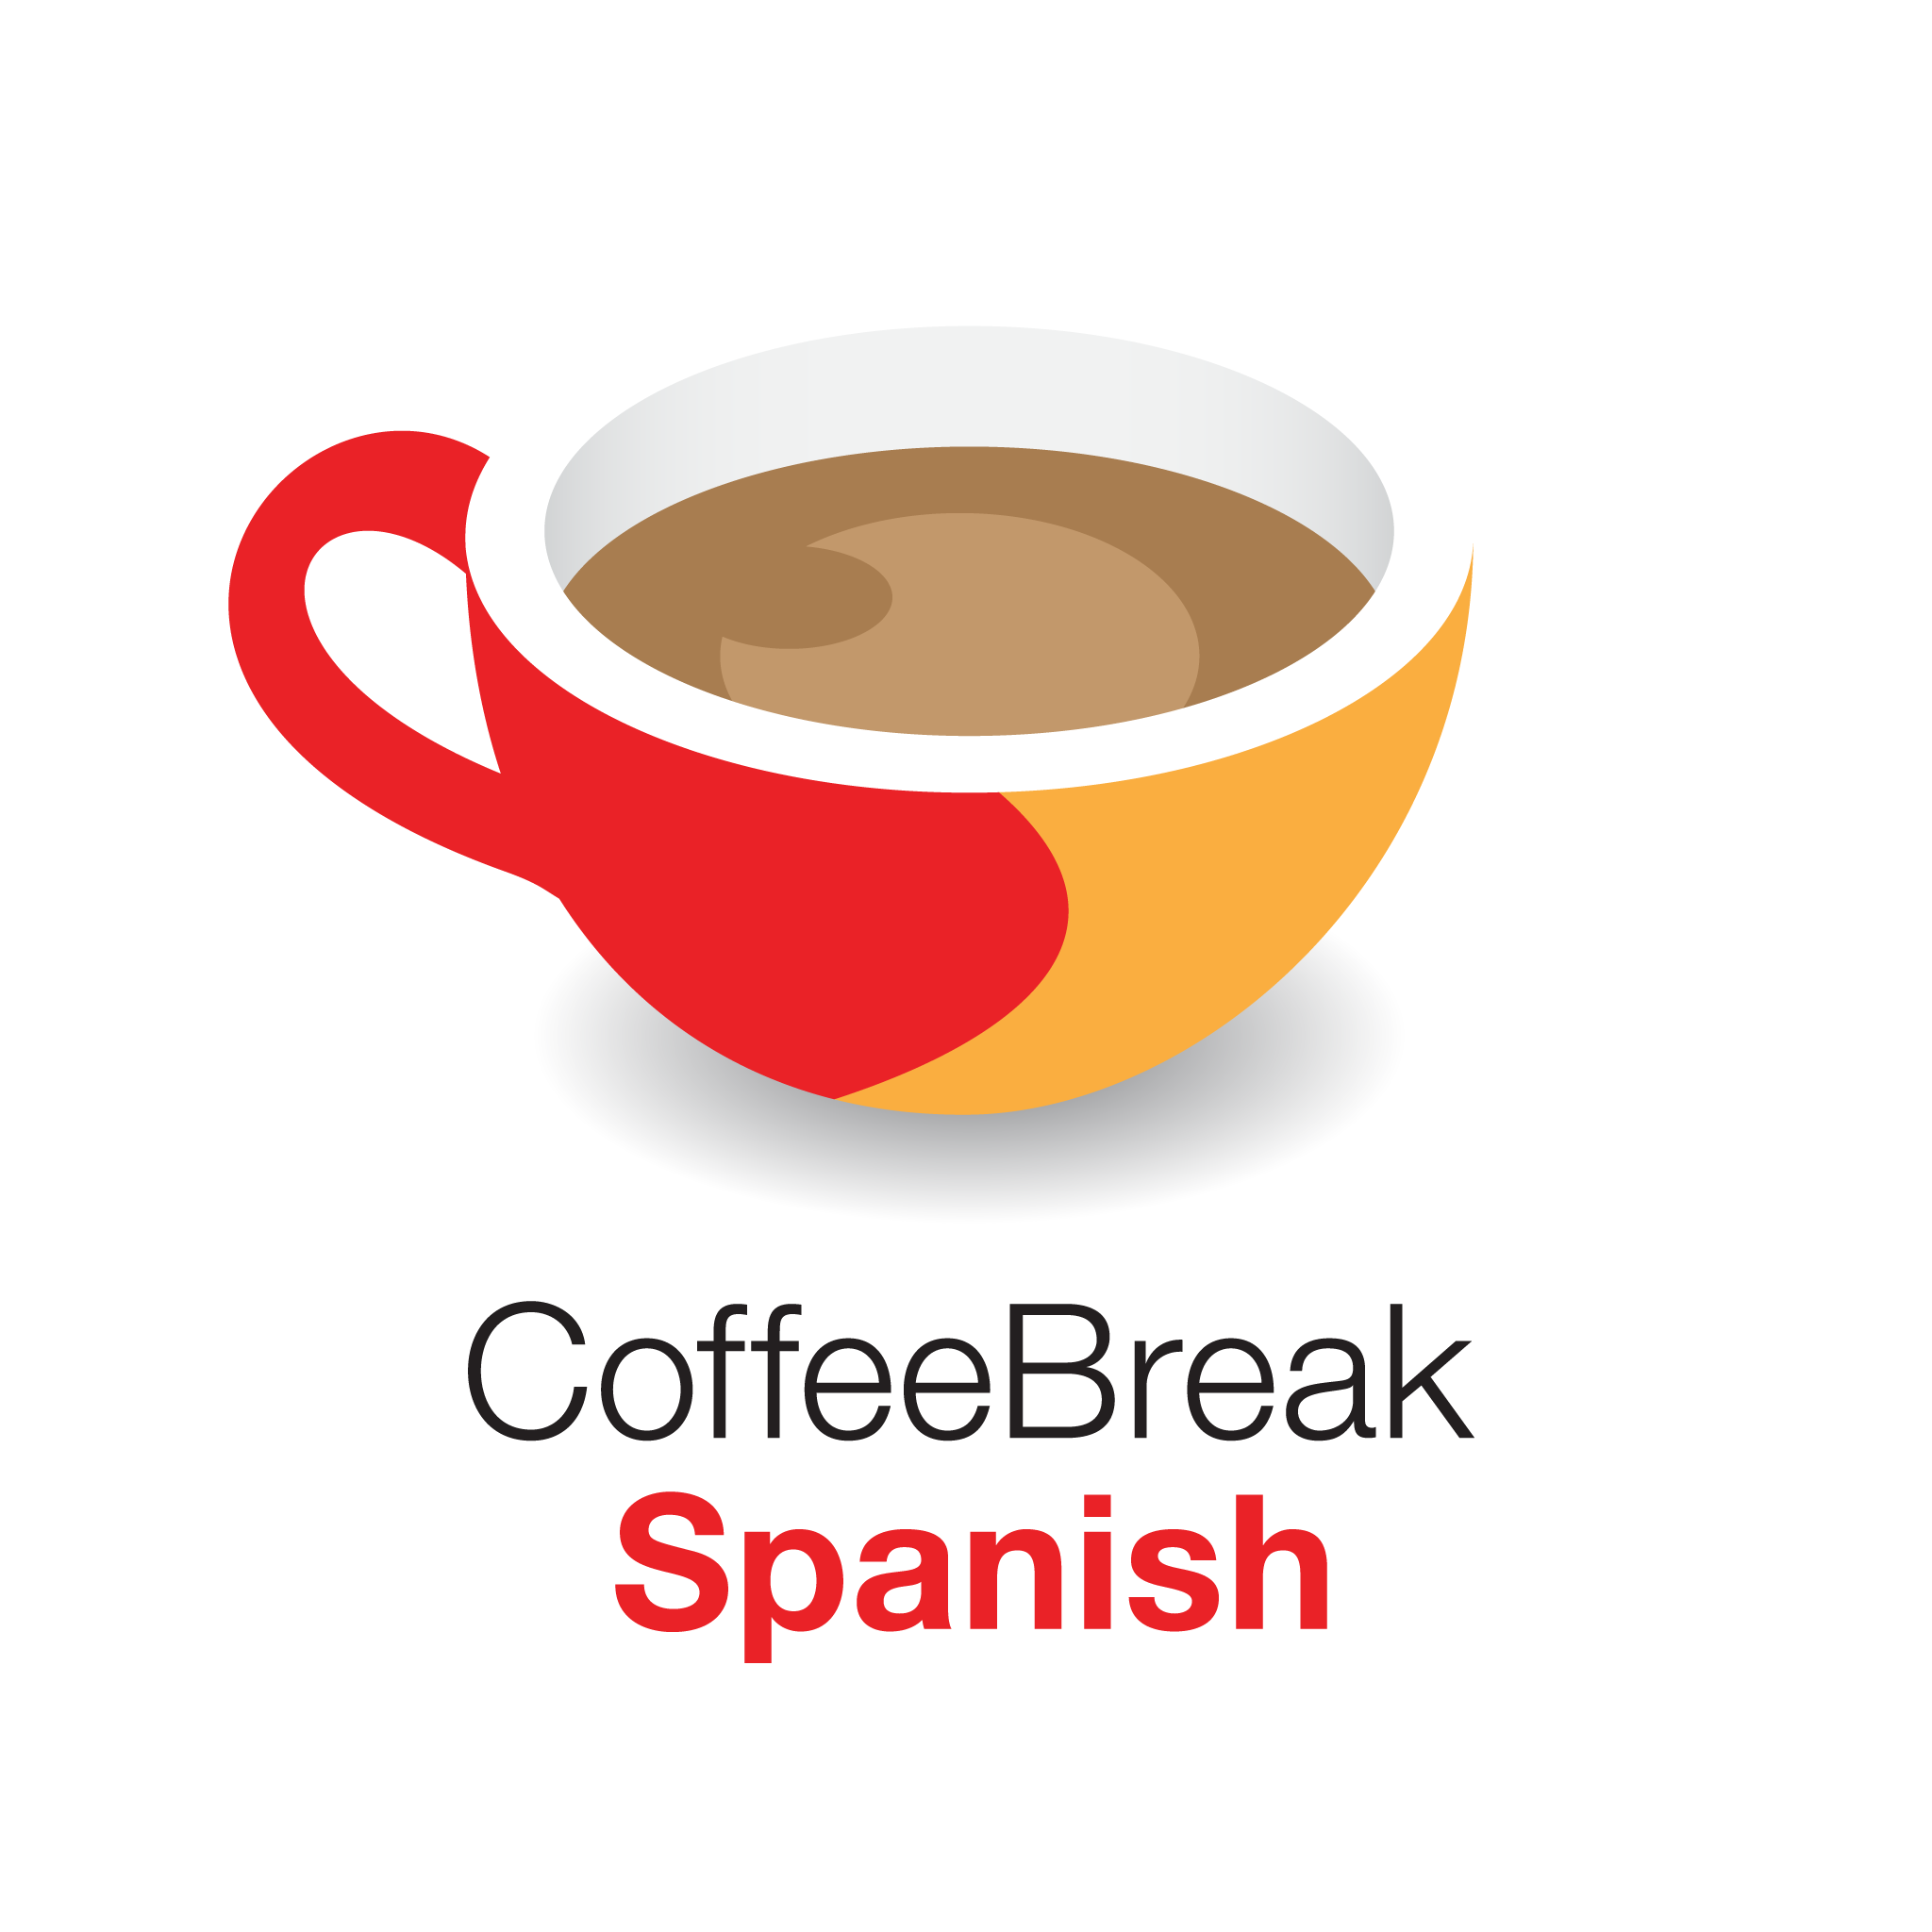 The Coffee Break Spanish Team